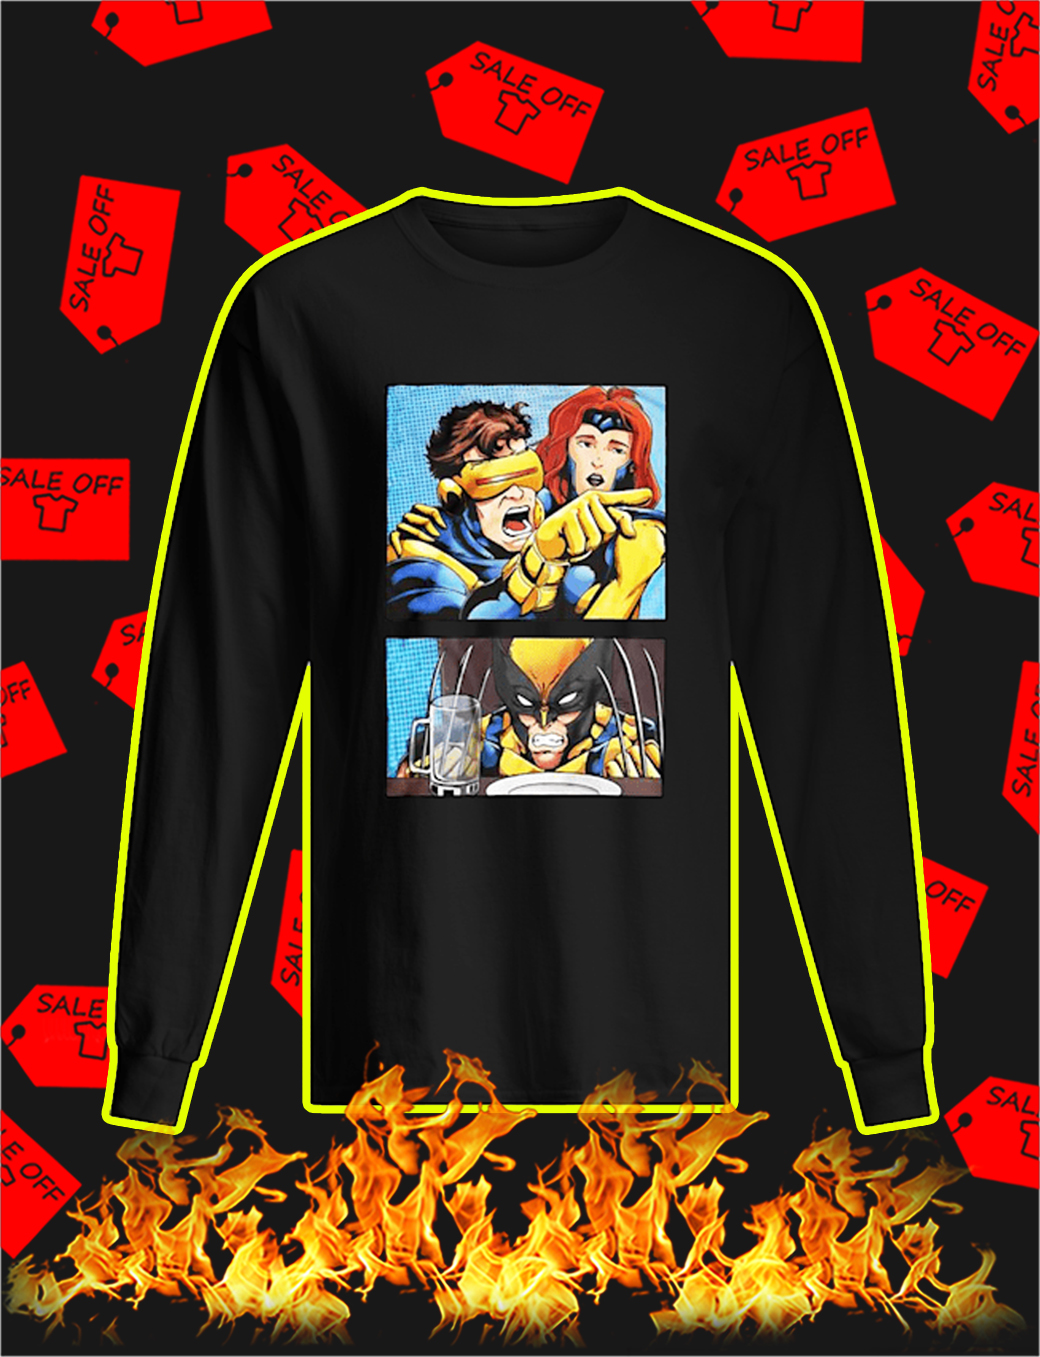 Cyclops Yelling at Wolverine longsleeve tee